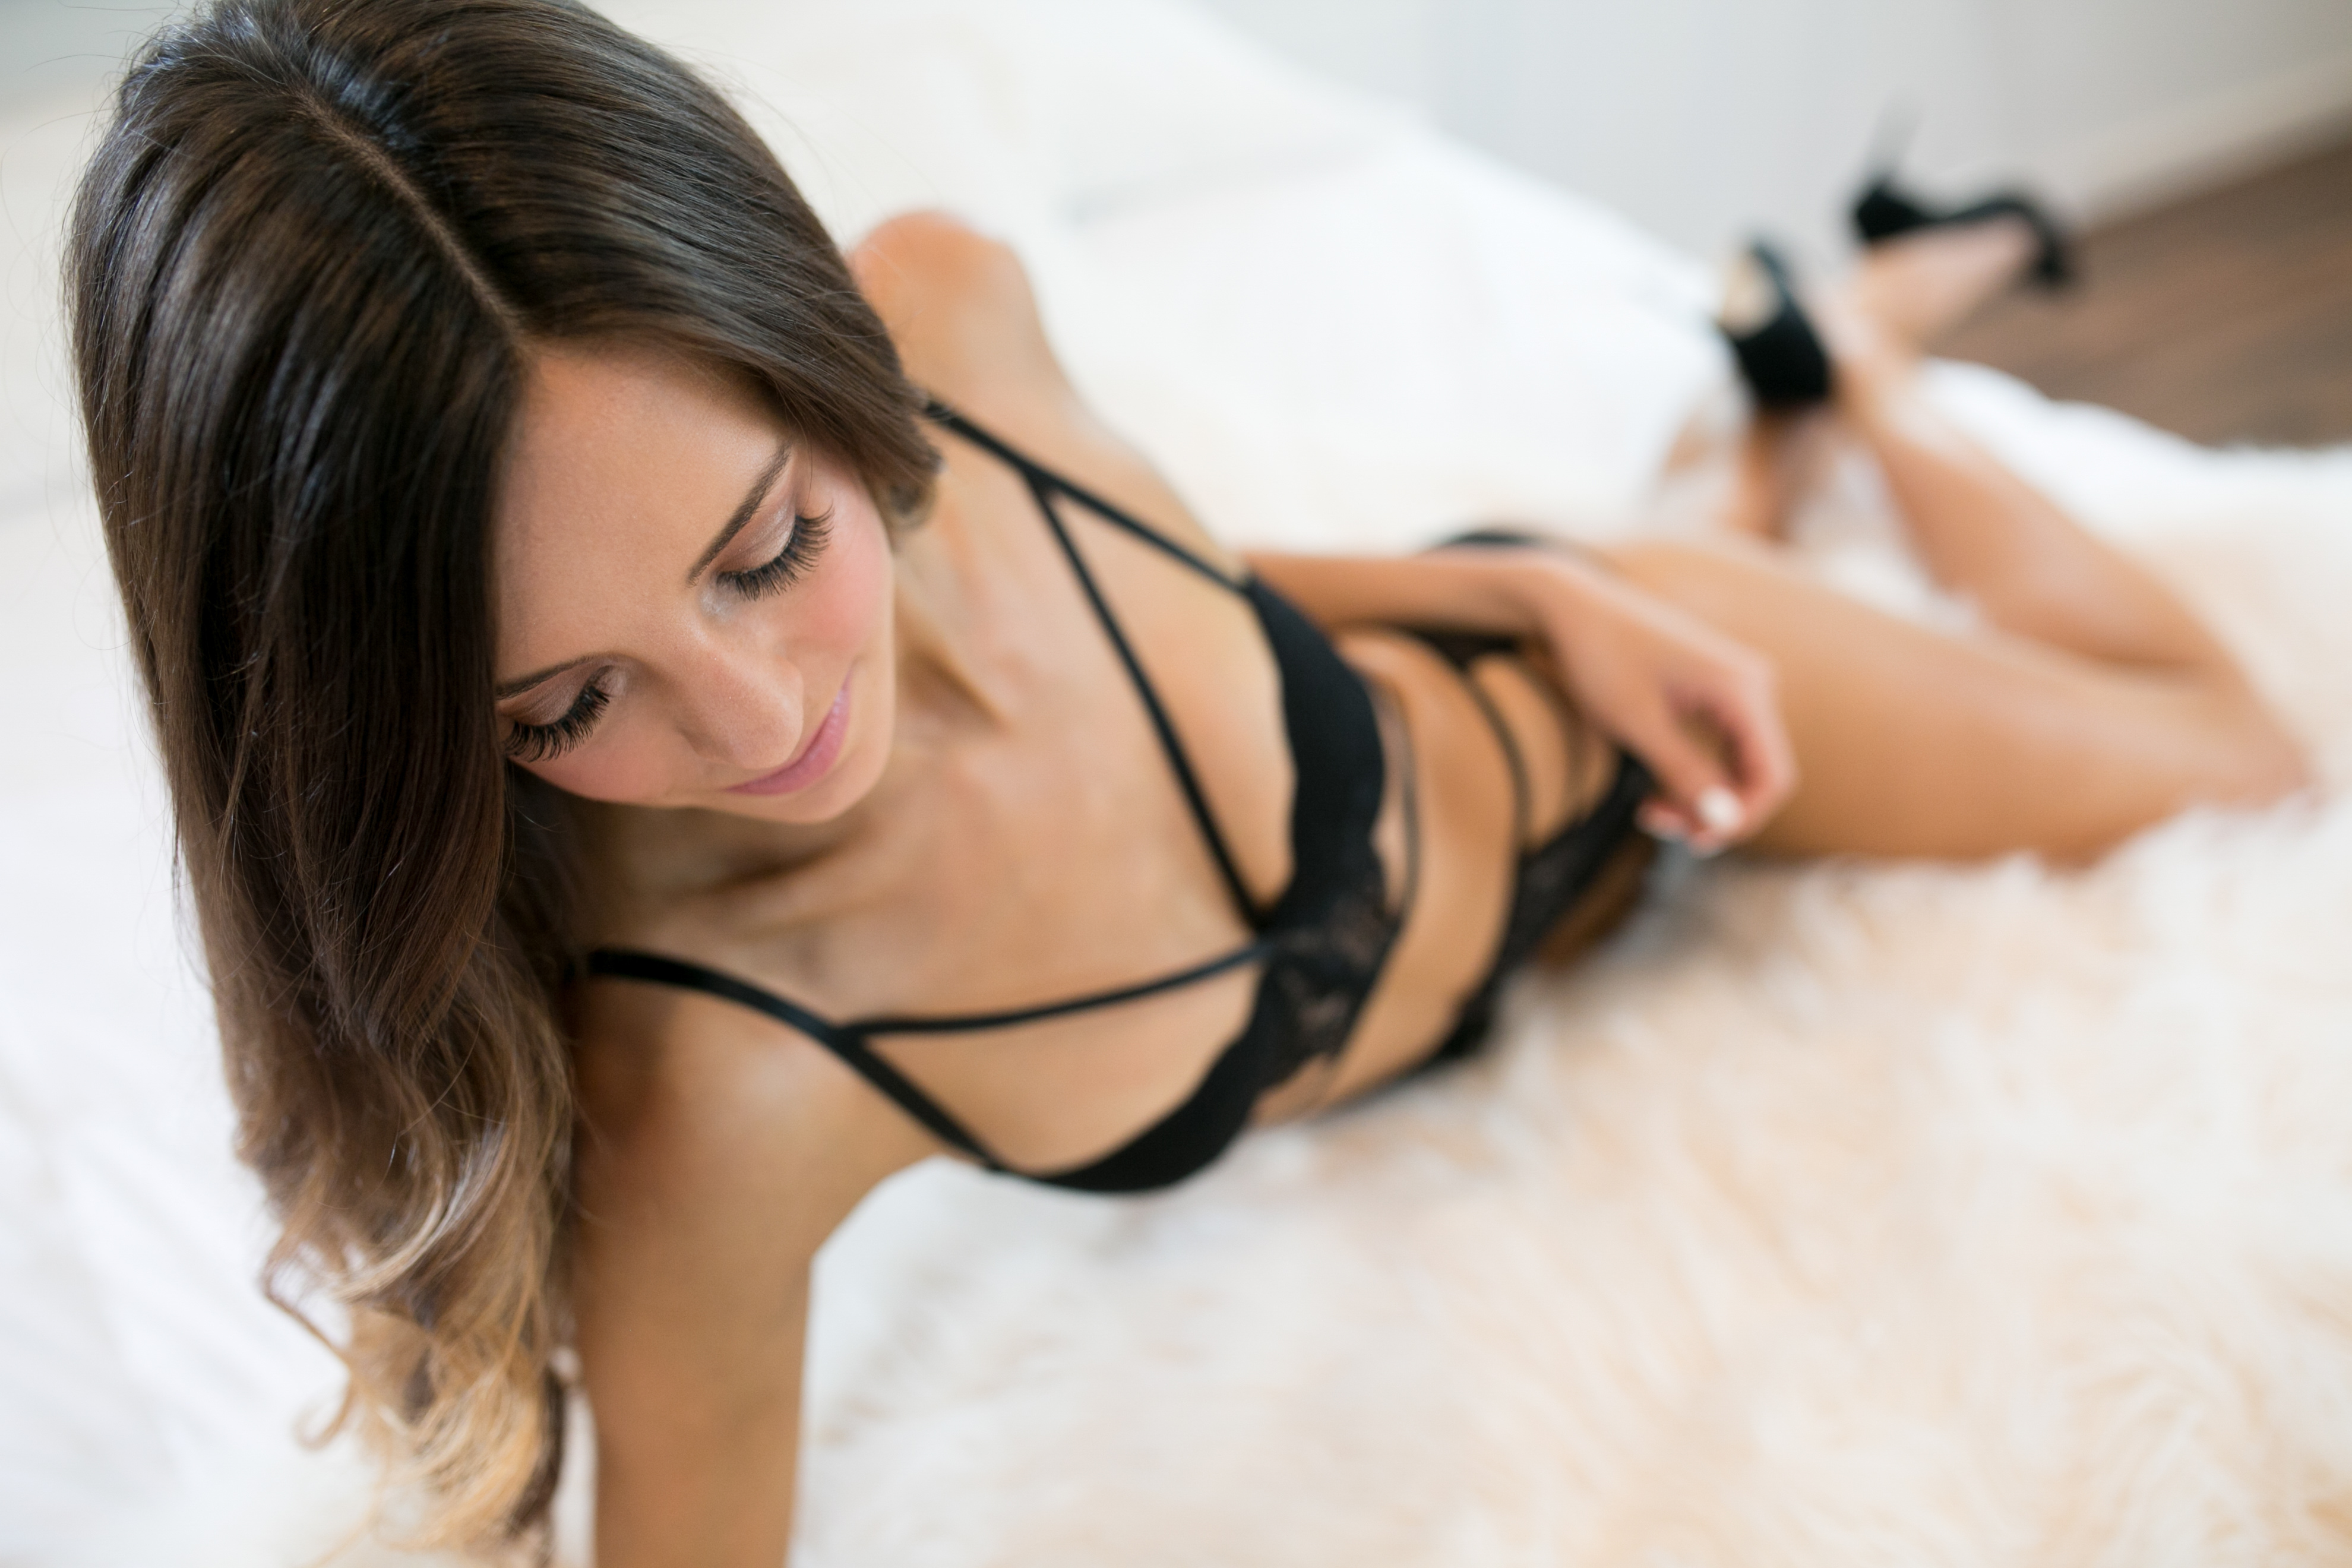 What to Expect During a Boudoir Shoot